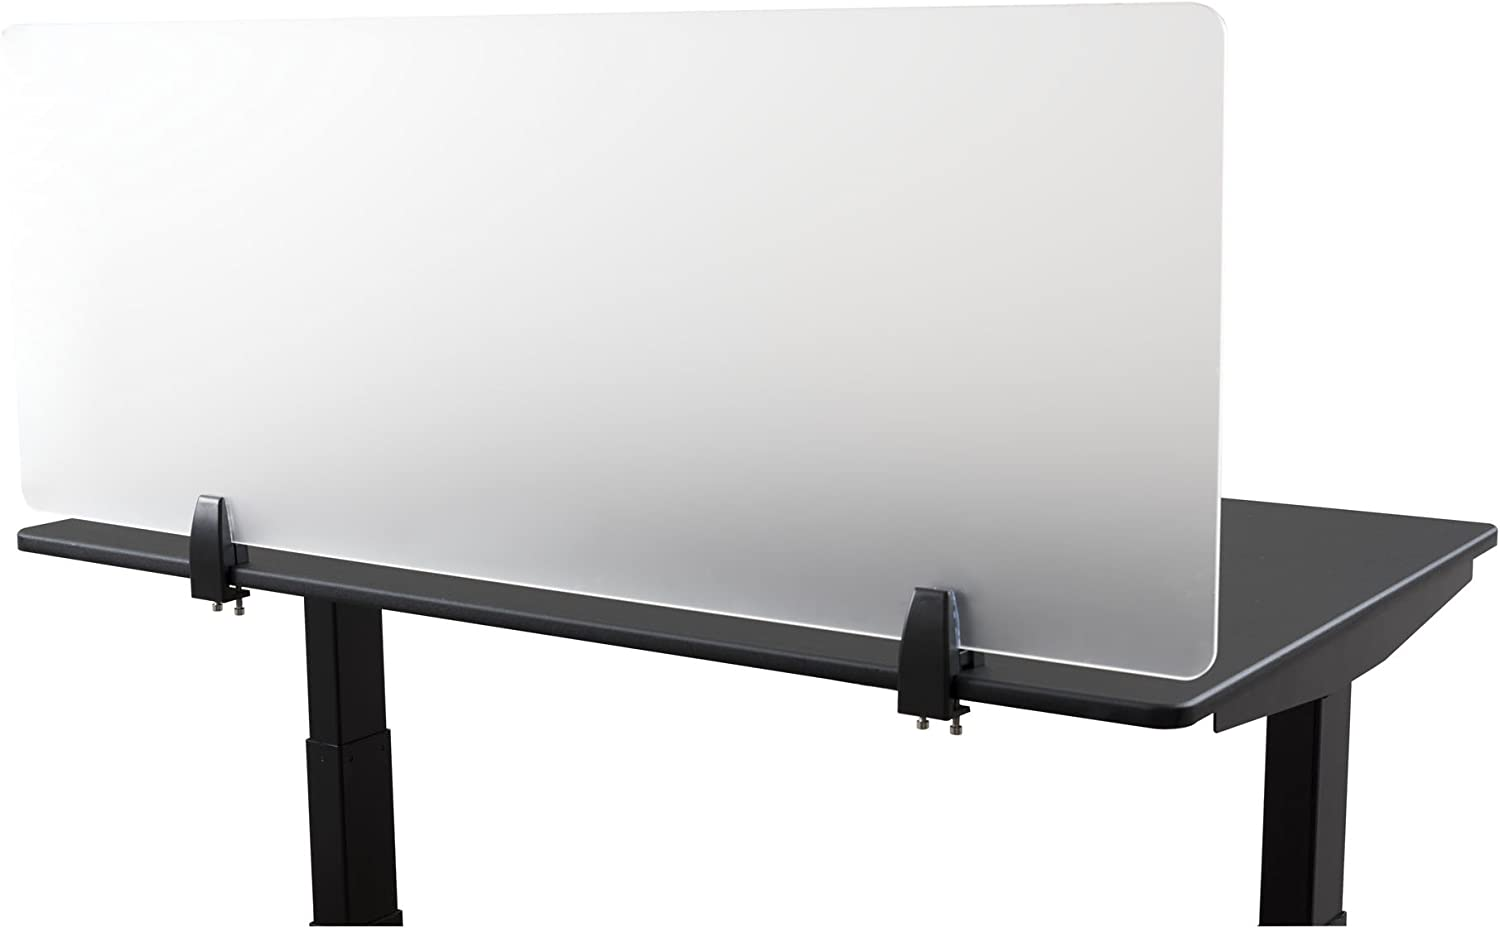 "Desk Mounted Privacy Panel – Frosted Desk Divider and Office Partition for Desks Up to 1"" Thick (48"" Wide, Frosted)"